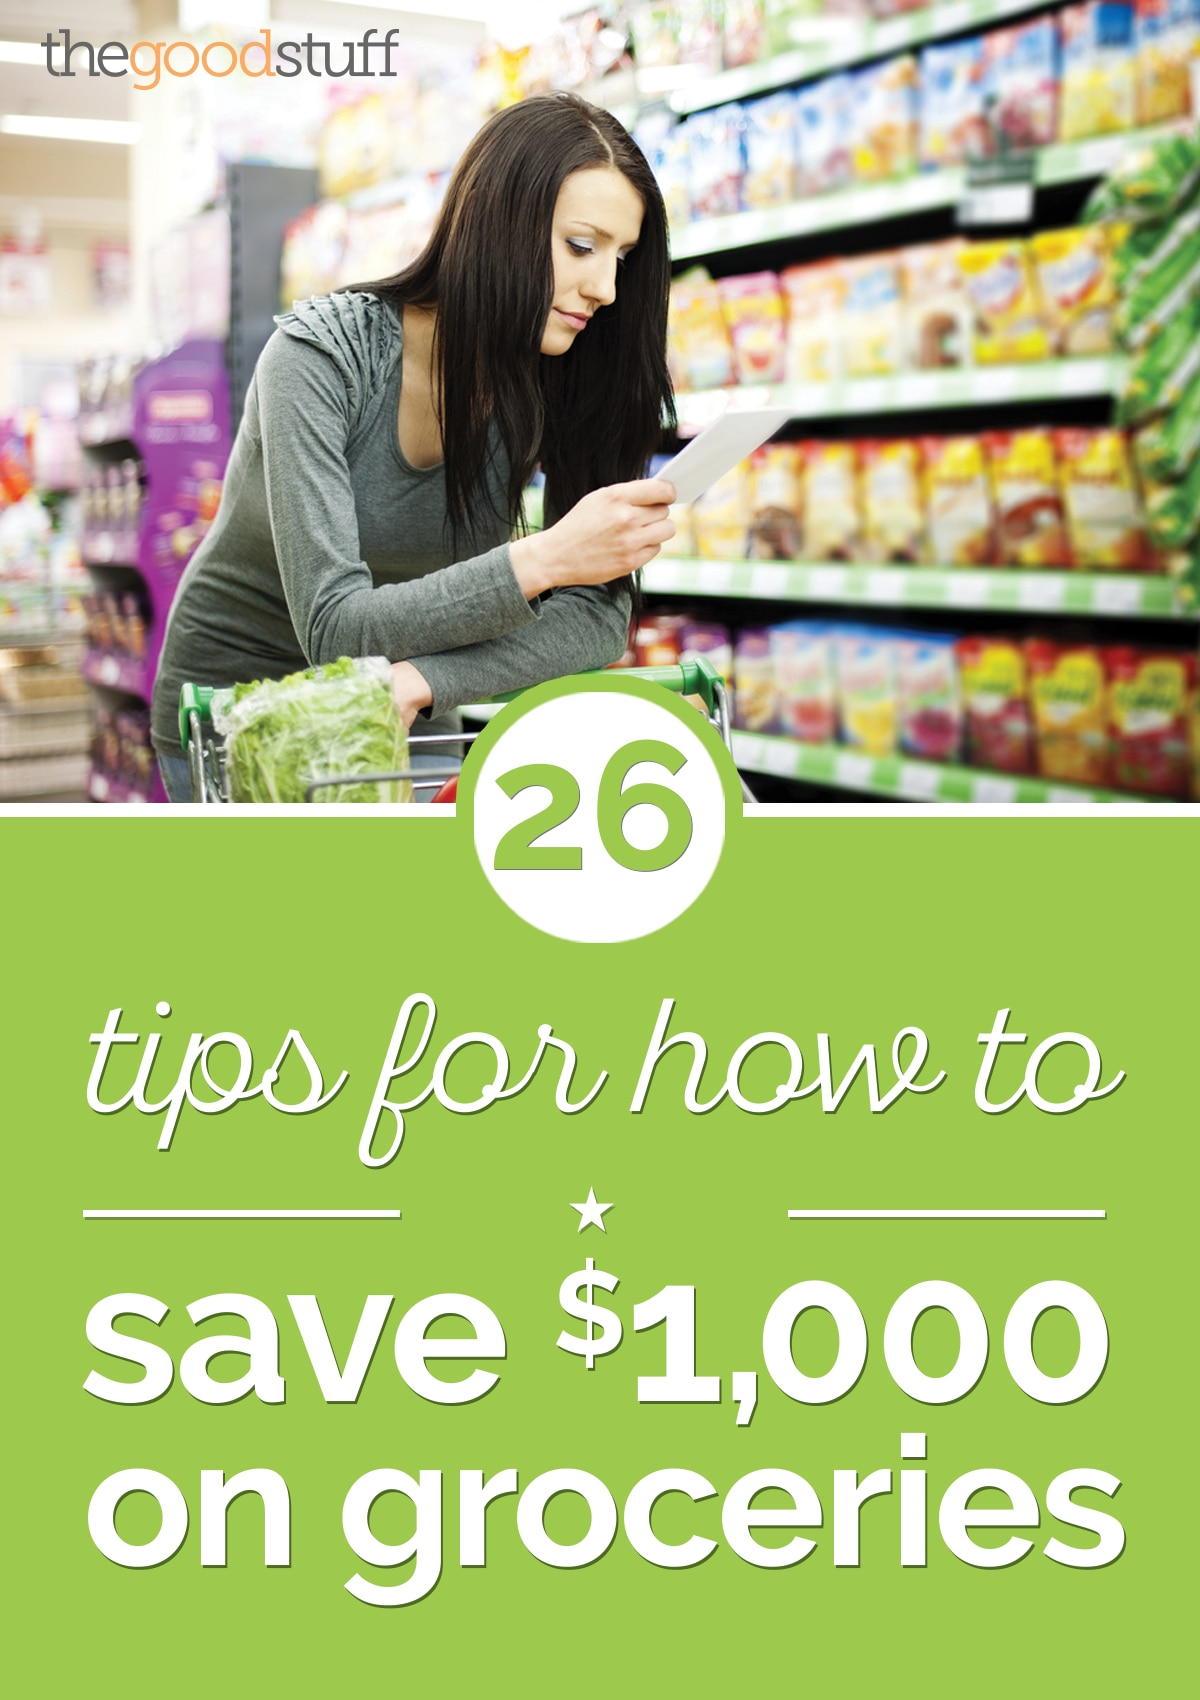 26 Tips for How to Save $1,000 on Groceries | thegoodstuff